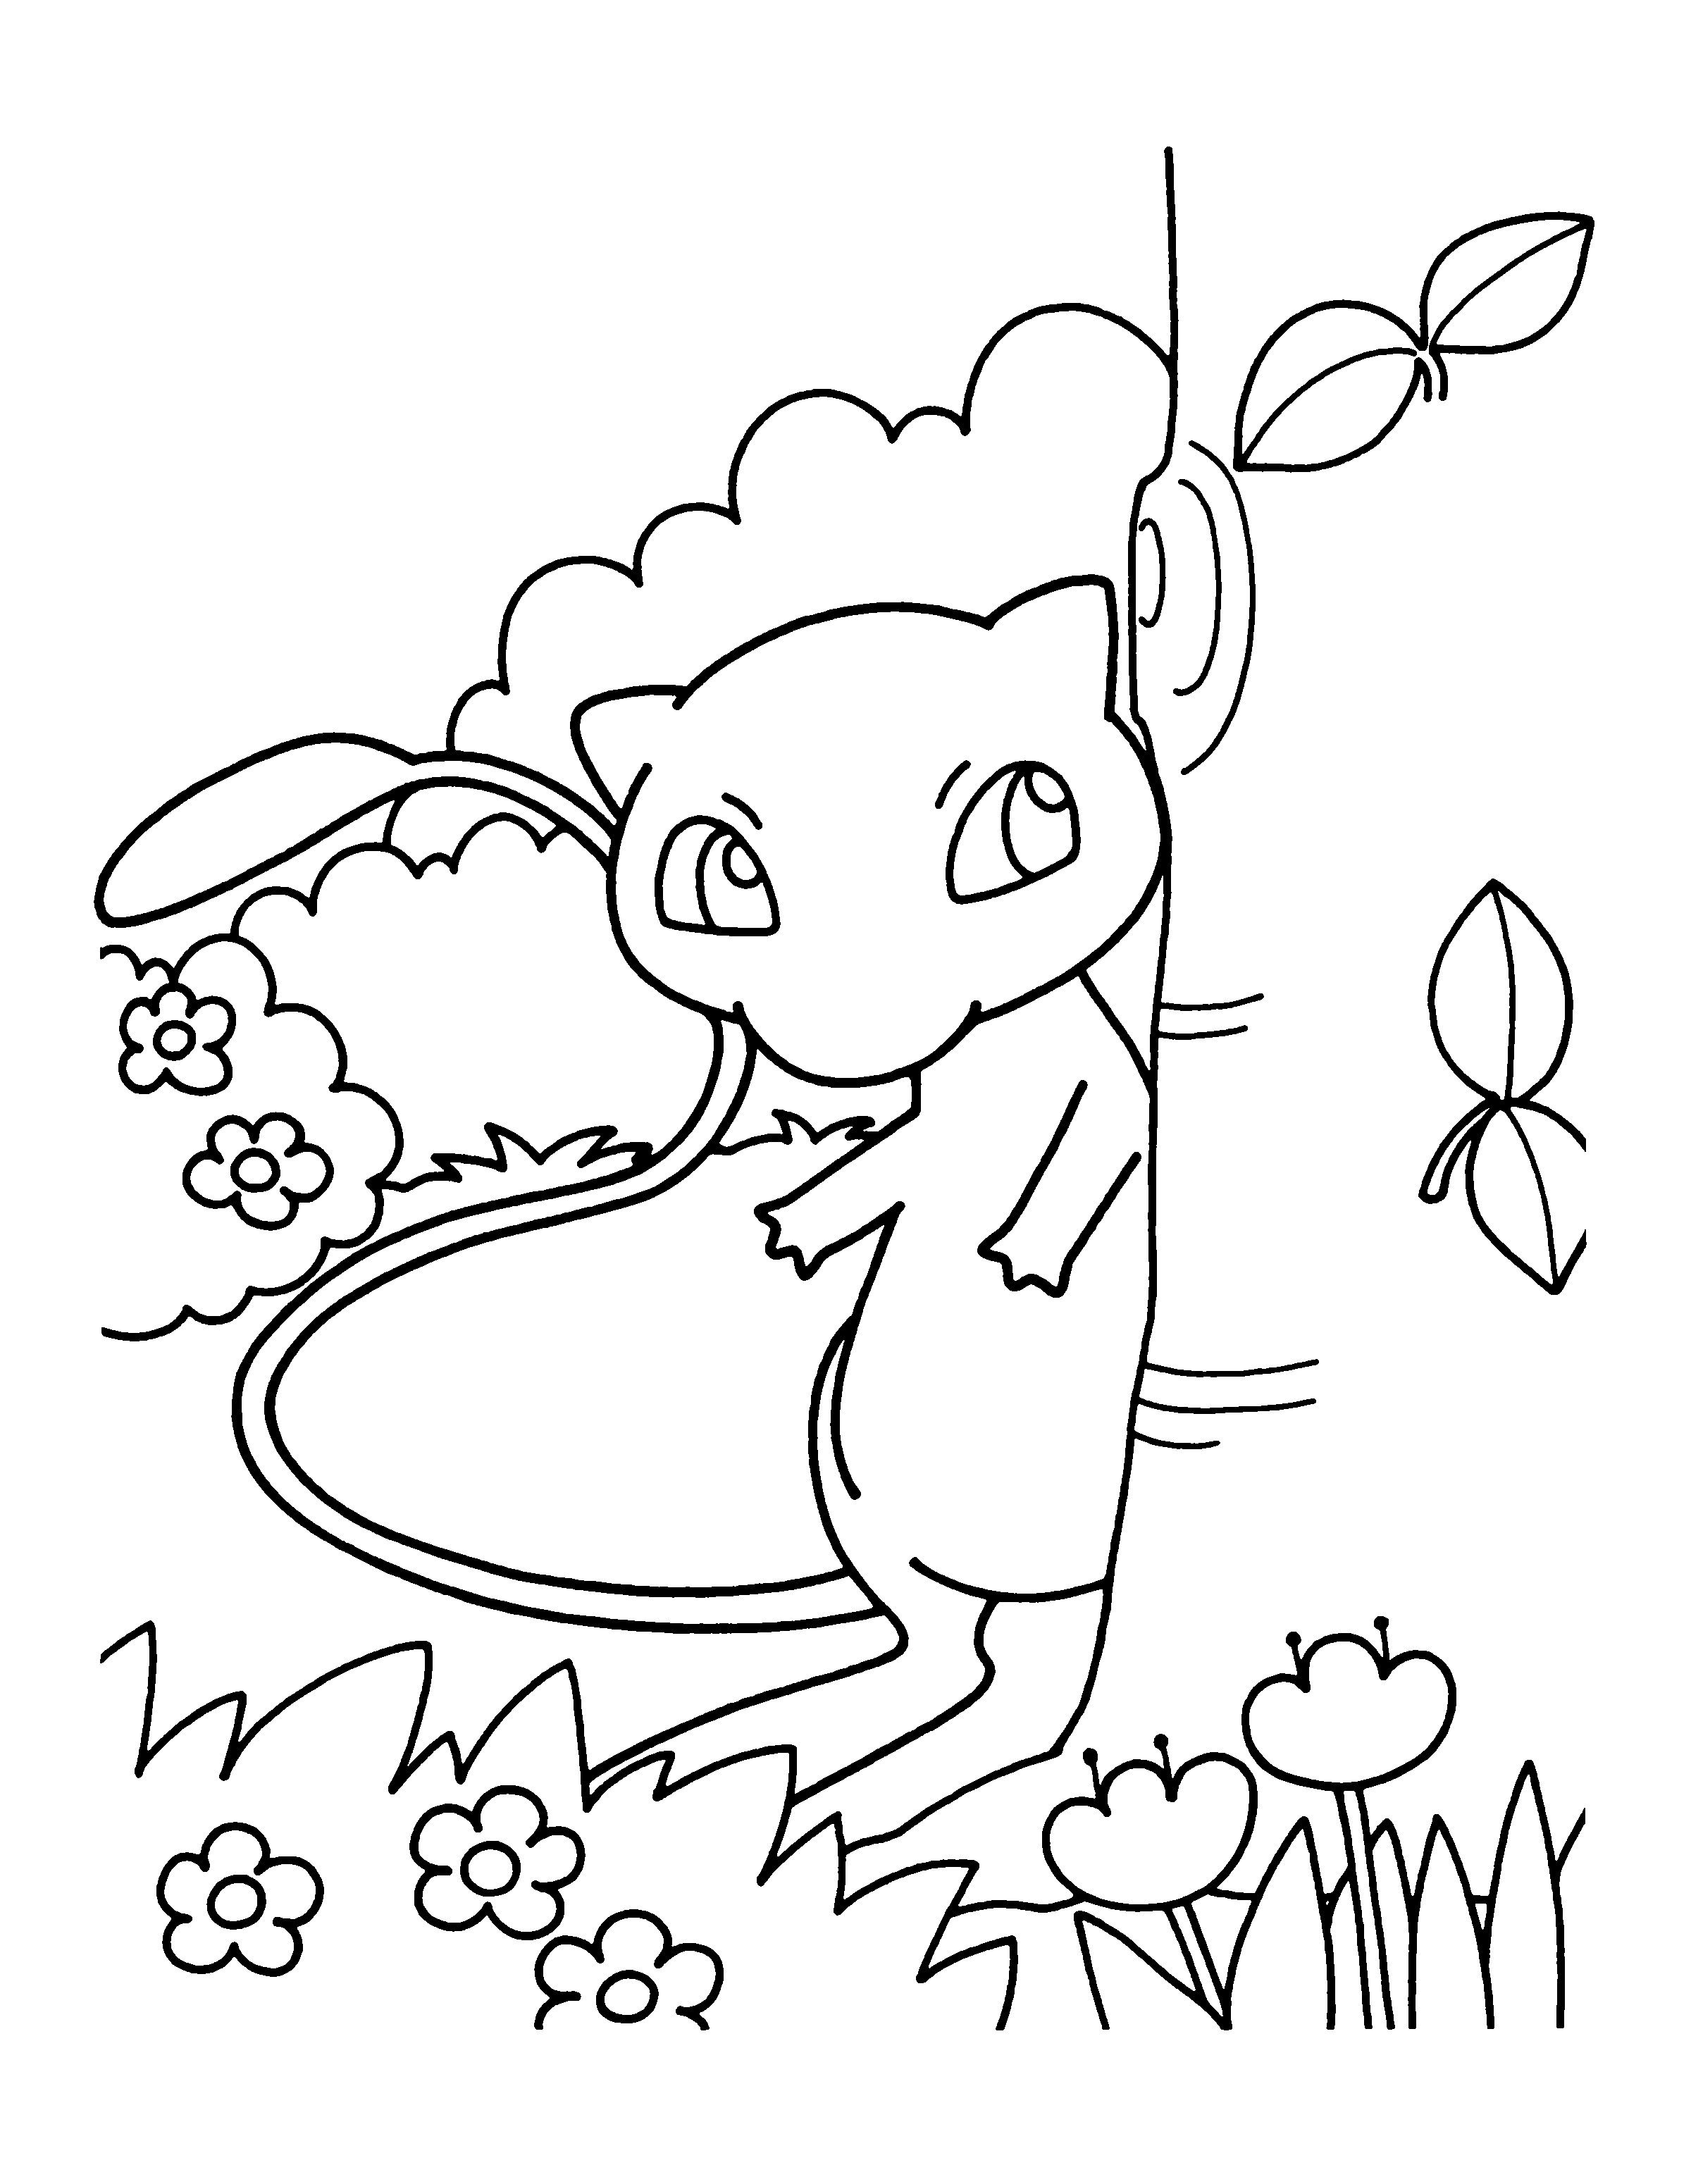 Pokemon Lapras Coloring Pages From The Thousand Photographs On The Web With Regards To Pokemon Pokemon Coloring Pages Pokemon Coloring Animal Coloring Pages